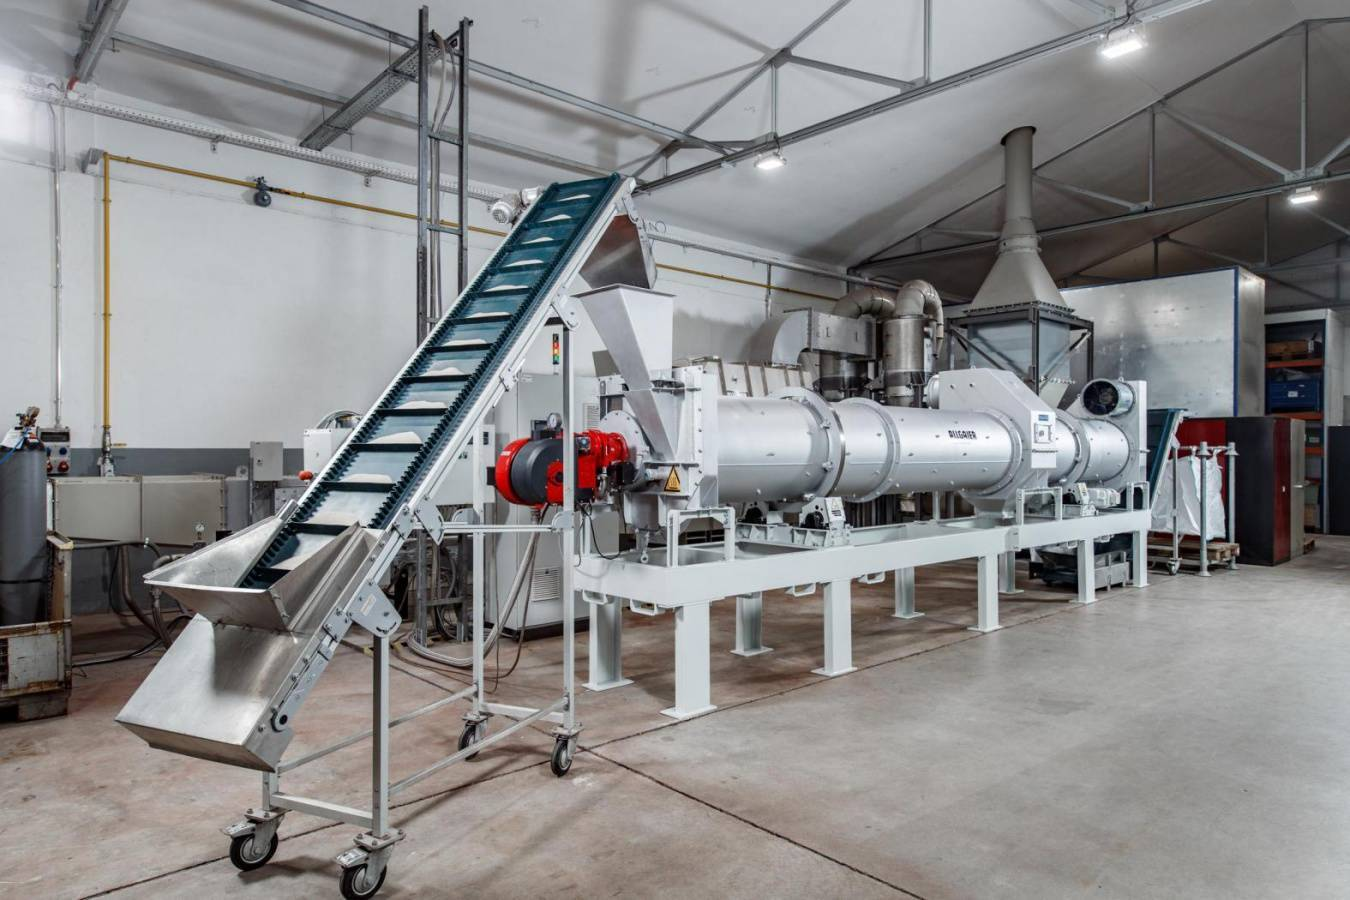 The new TK-D drum dryer / cooler system MOZER as a pilot plant in the Allgaier Test Center, Uhingen, Germany enables the solids to be dried to very low temperatures up to near ambient or cooling air temperatures